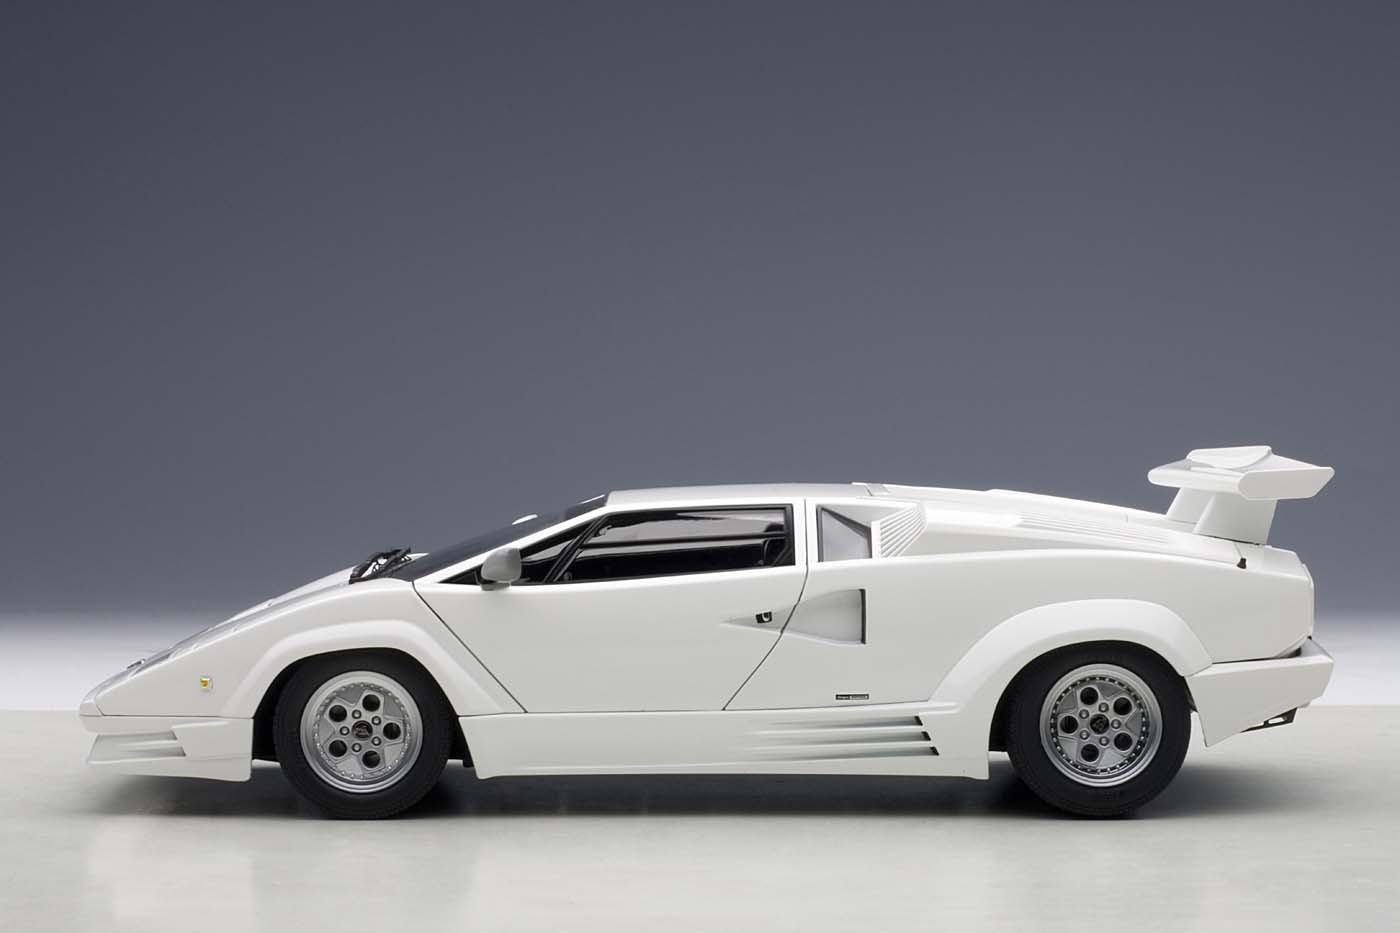 Autoart Highly Detailed Die Cast Model 25th Anniversary Lamborghini